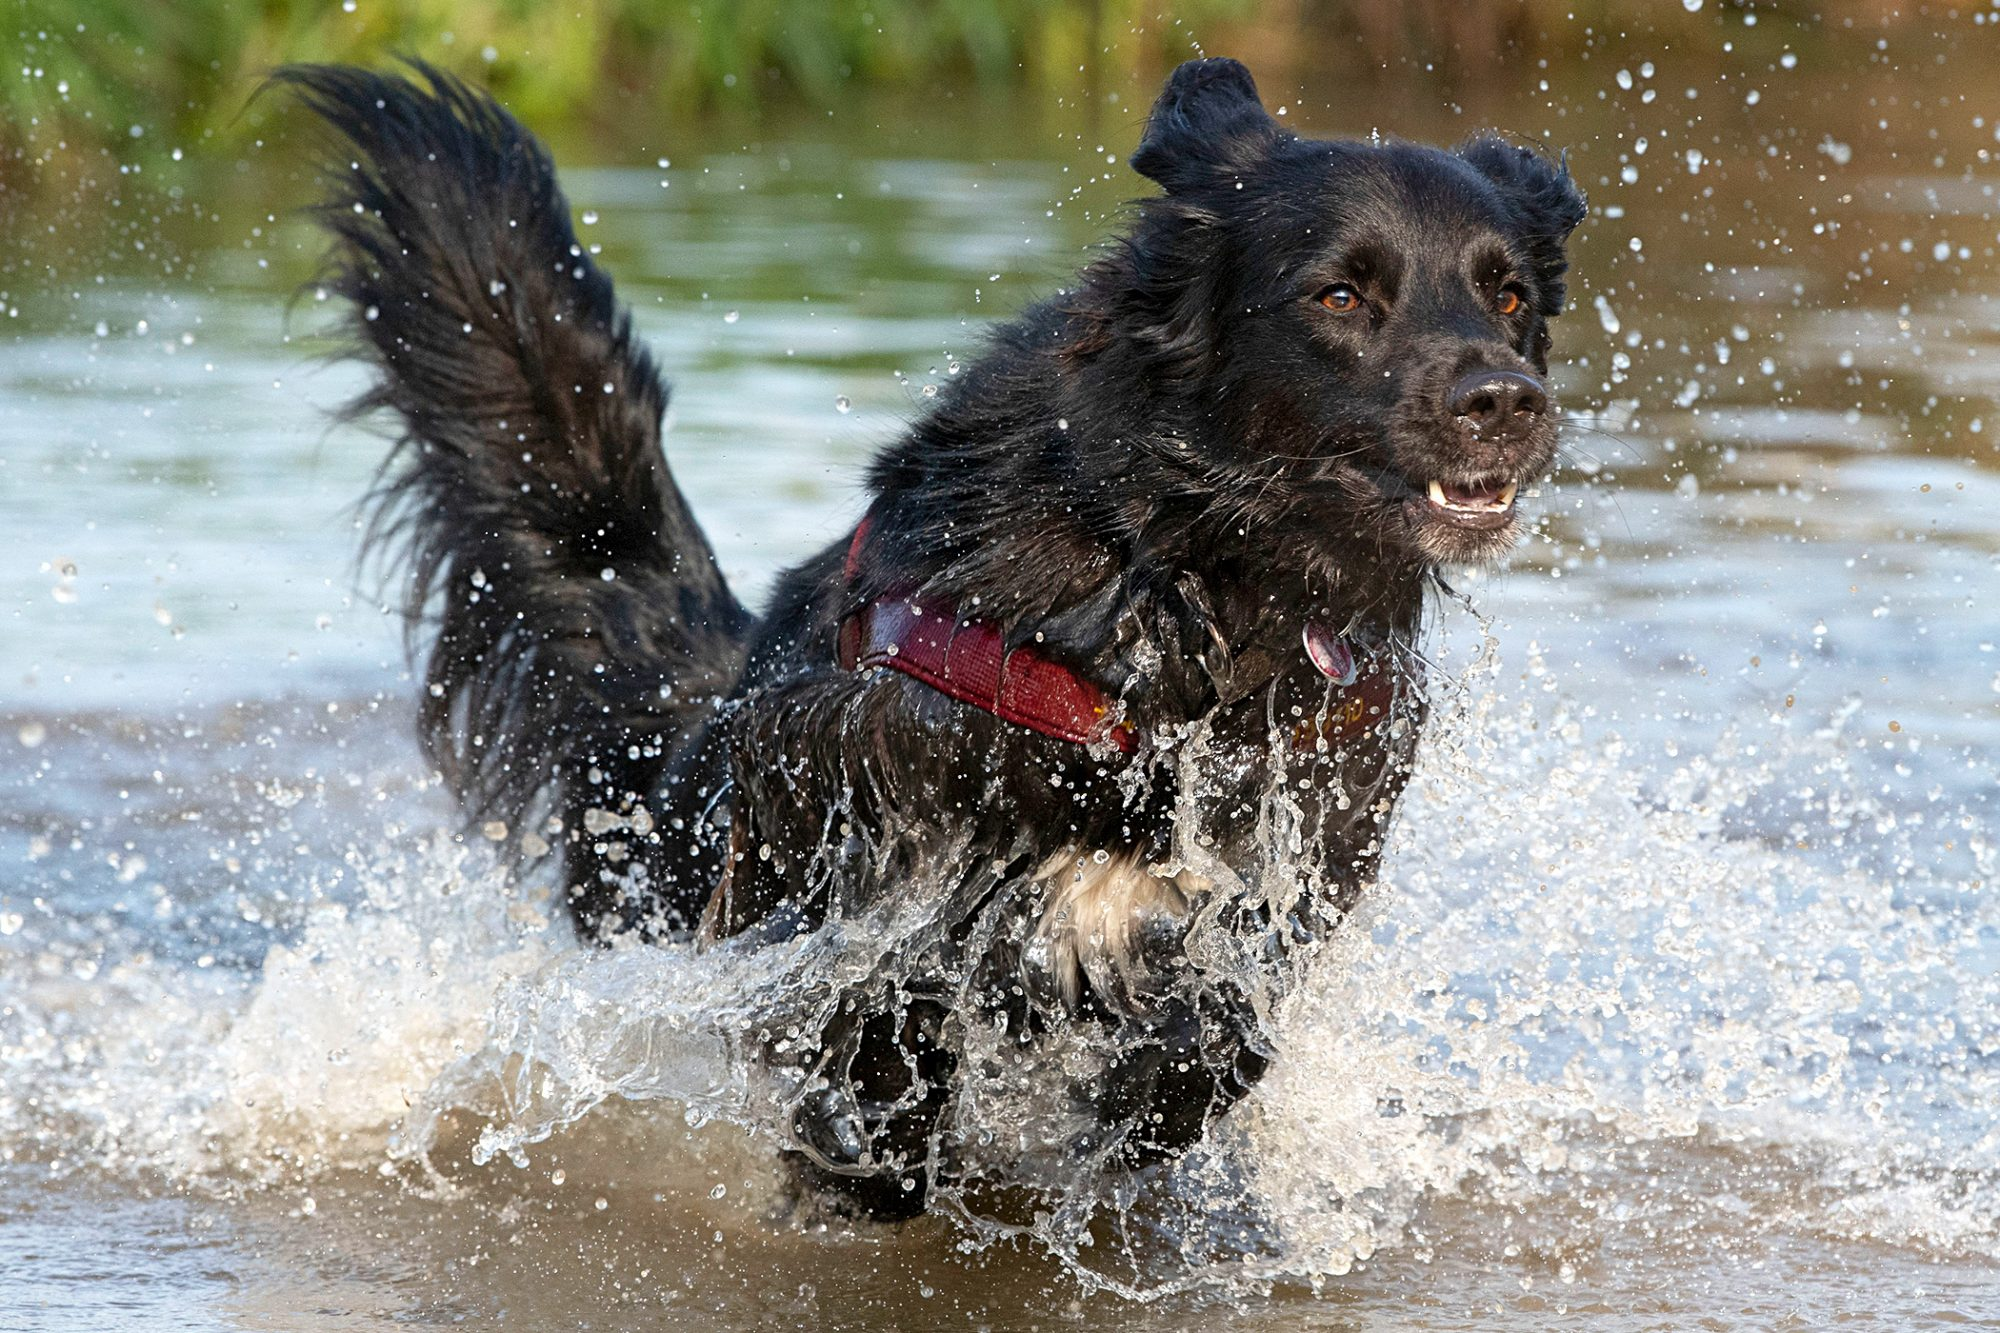 Black Flat-Coated Retriever running in the water